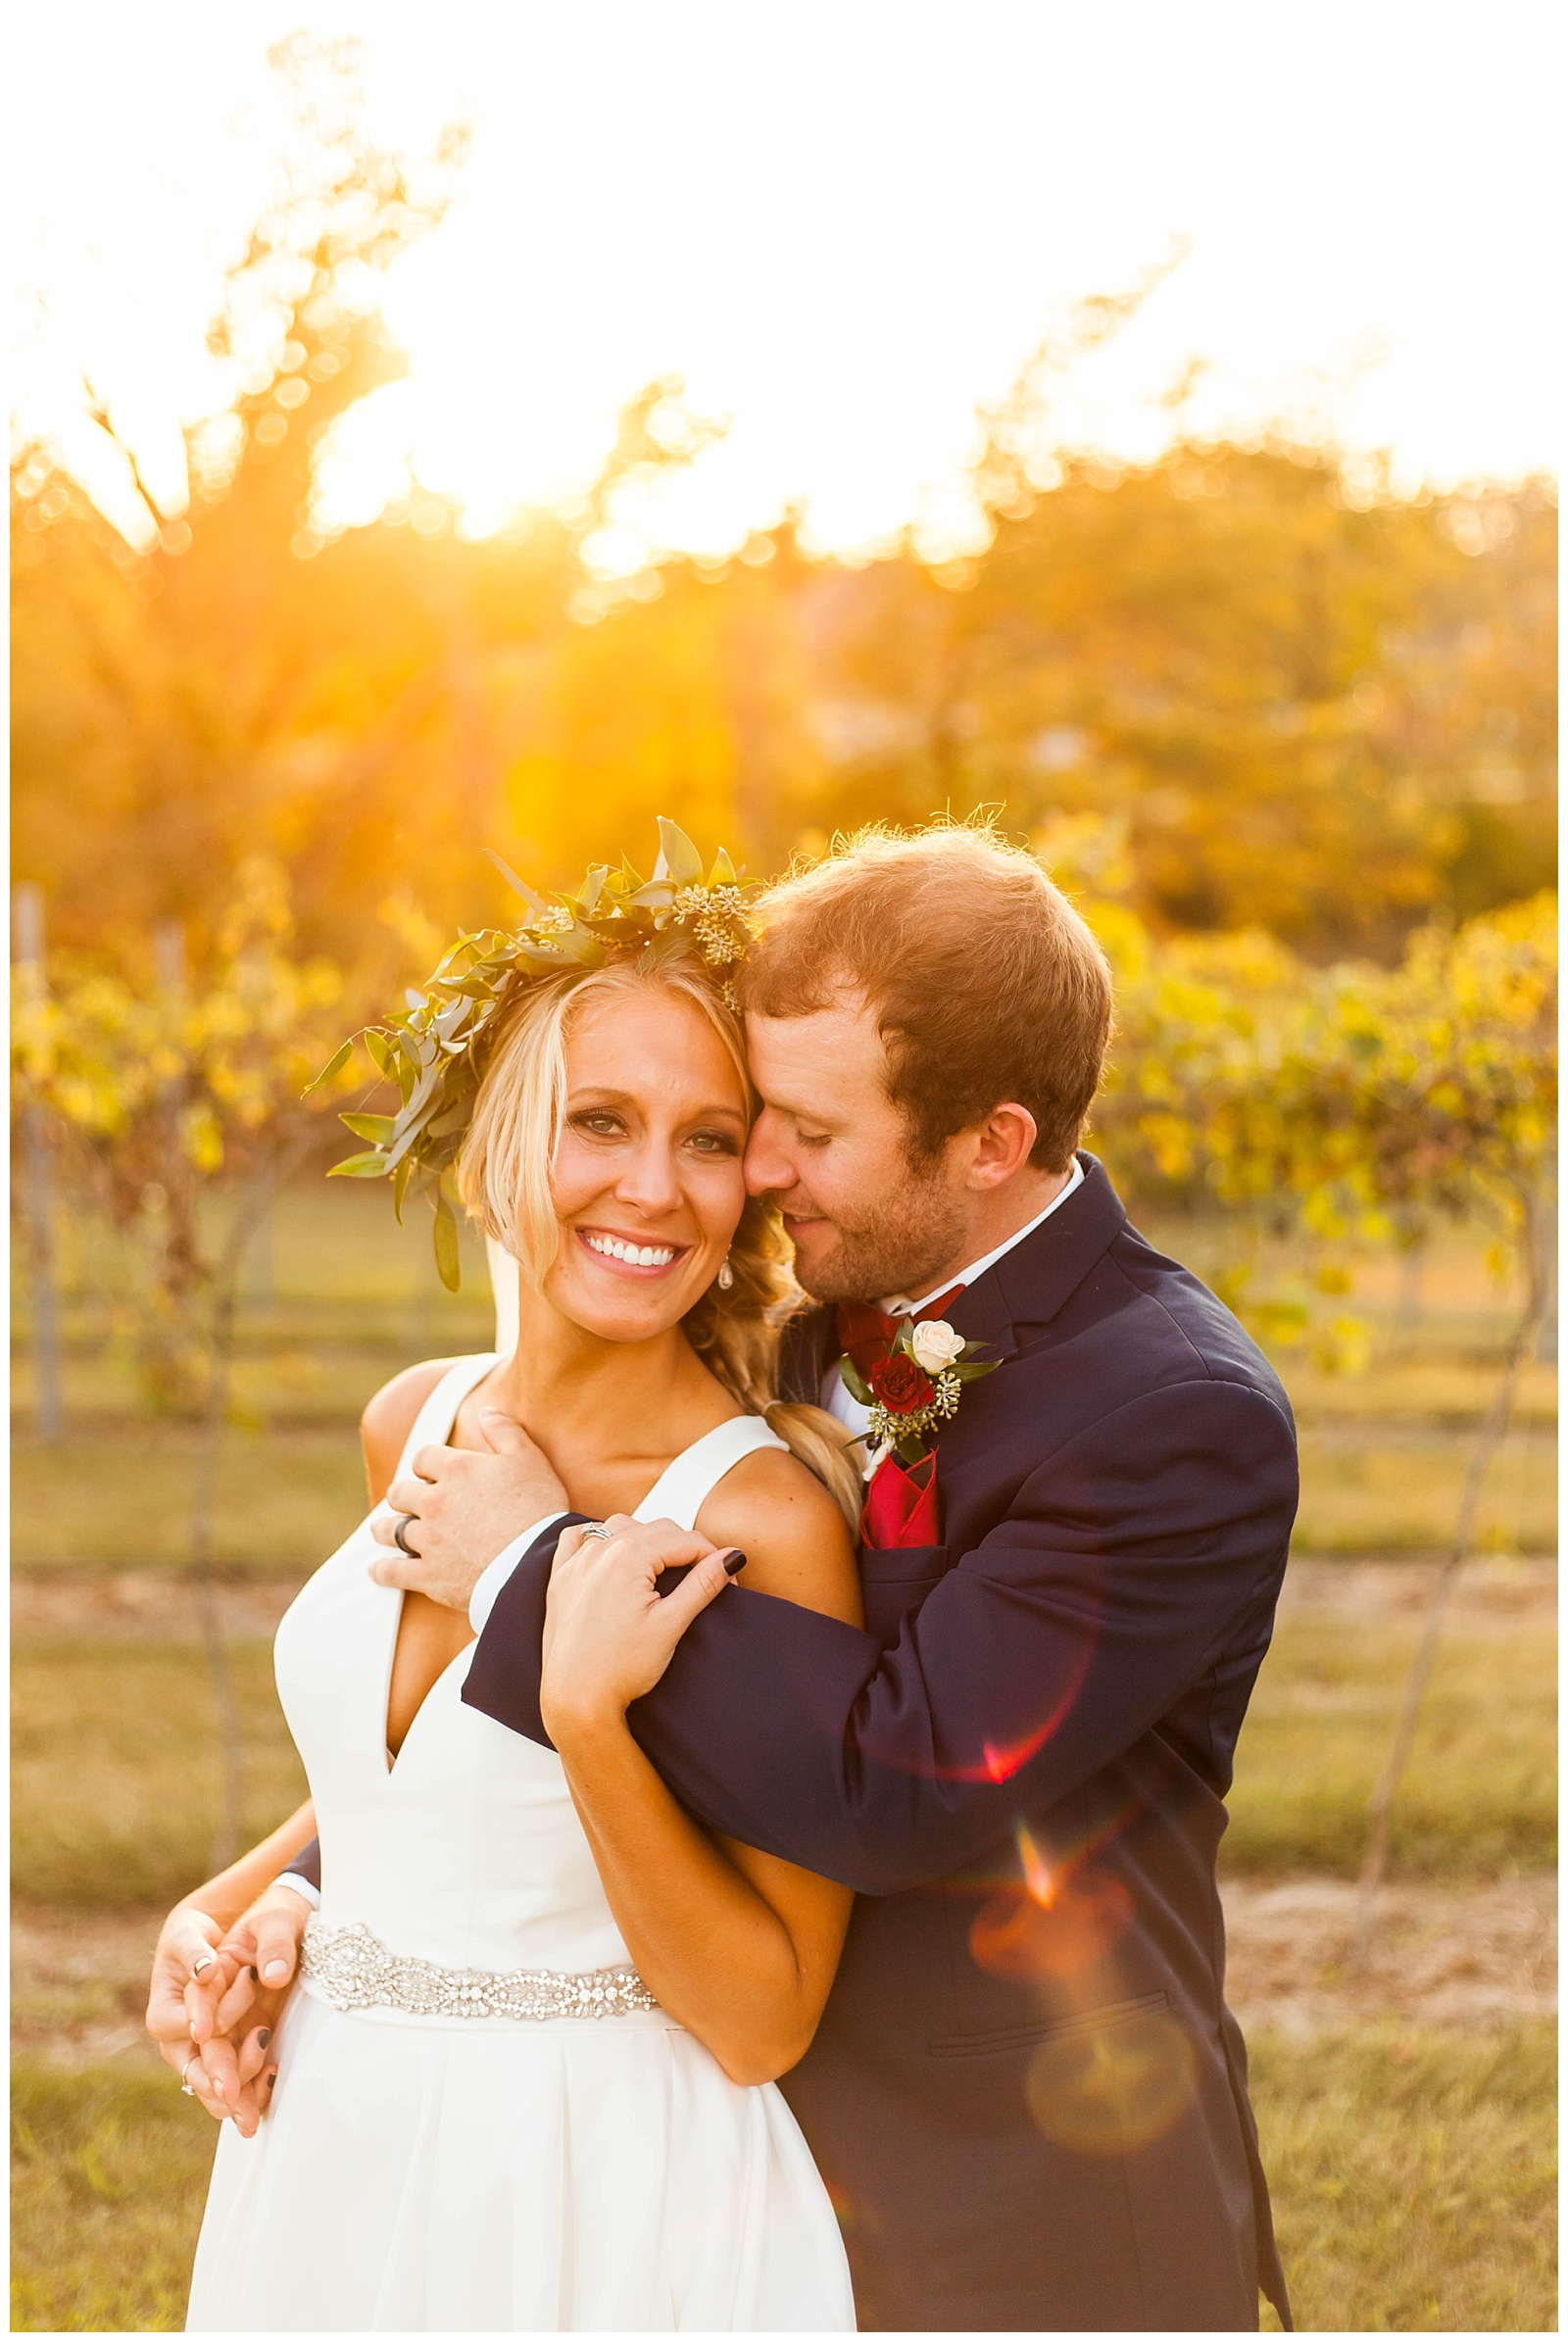 Rustic Winery Wedding Photographer - St. Louis, Southern IL